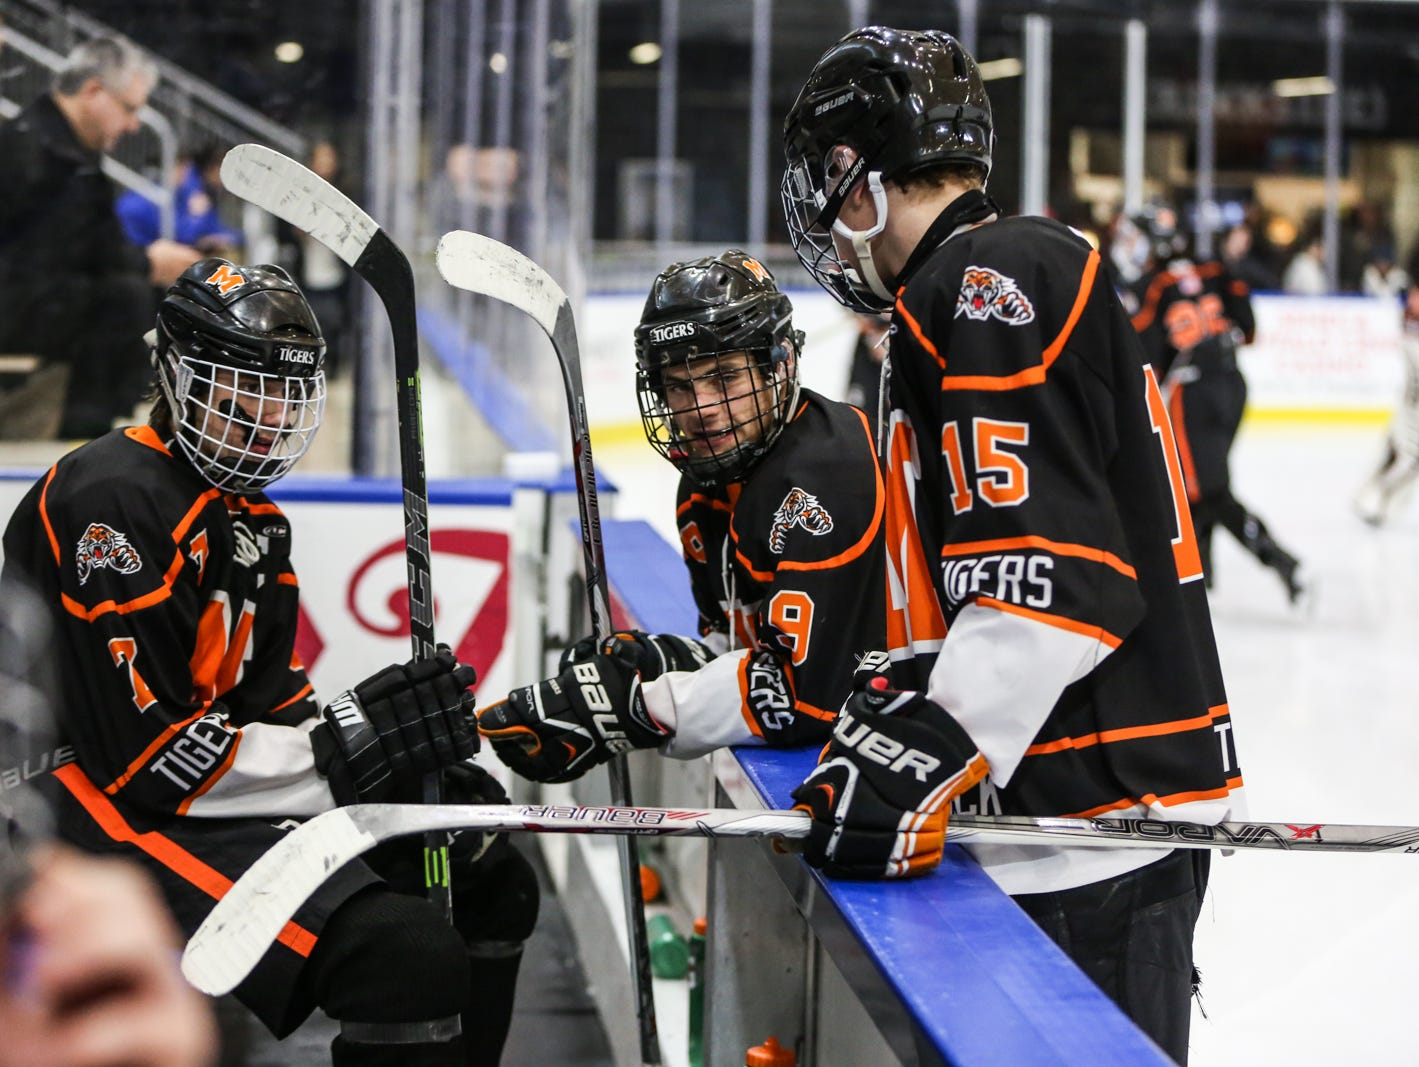 Mamaroneck's Alex Ewald (7) Connor Leblanc (8), and James Torre (15) talk before the third period starts. Mamaroneck defeated West Genesee 1-0 and won the NYSPHSAA Division 1 HarborCenter in Buffalo, NY. Nick Serrata - For The Journal News